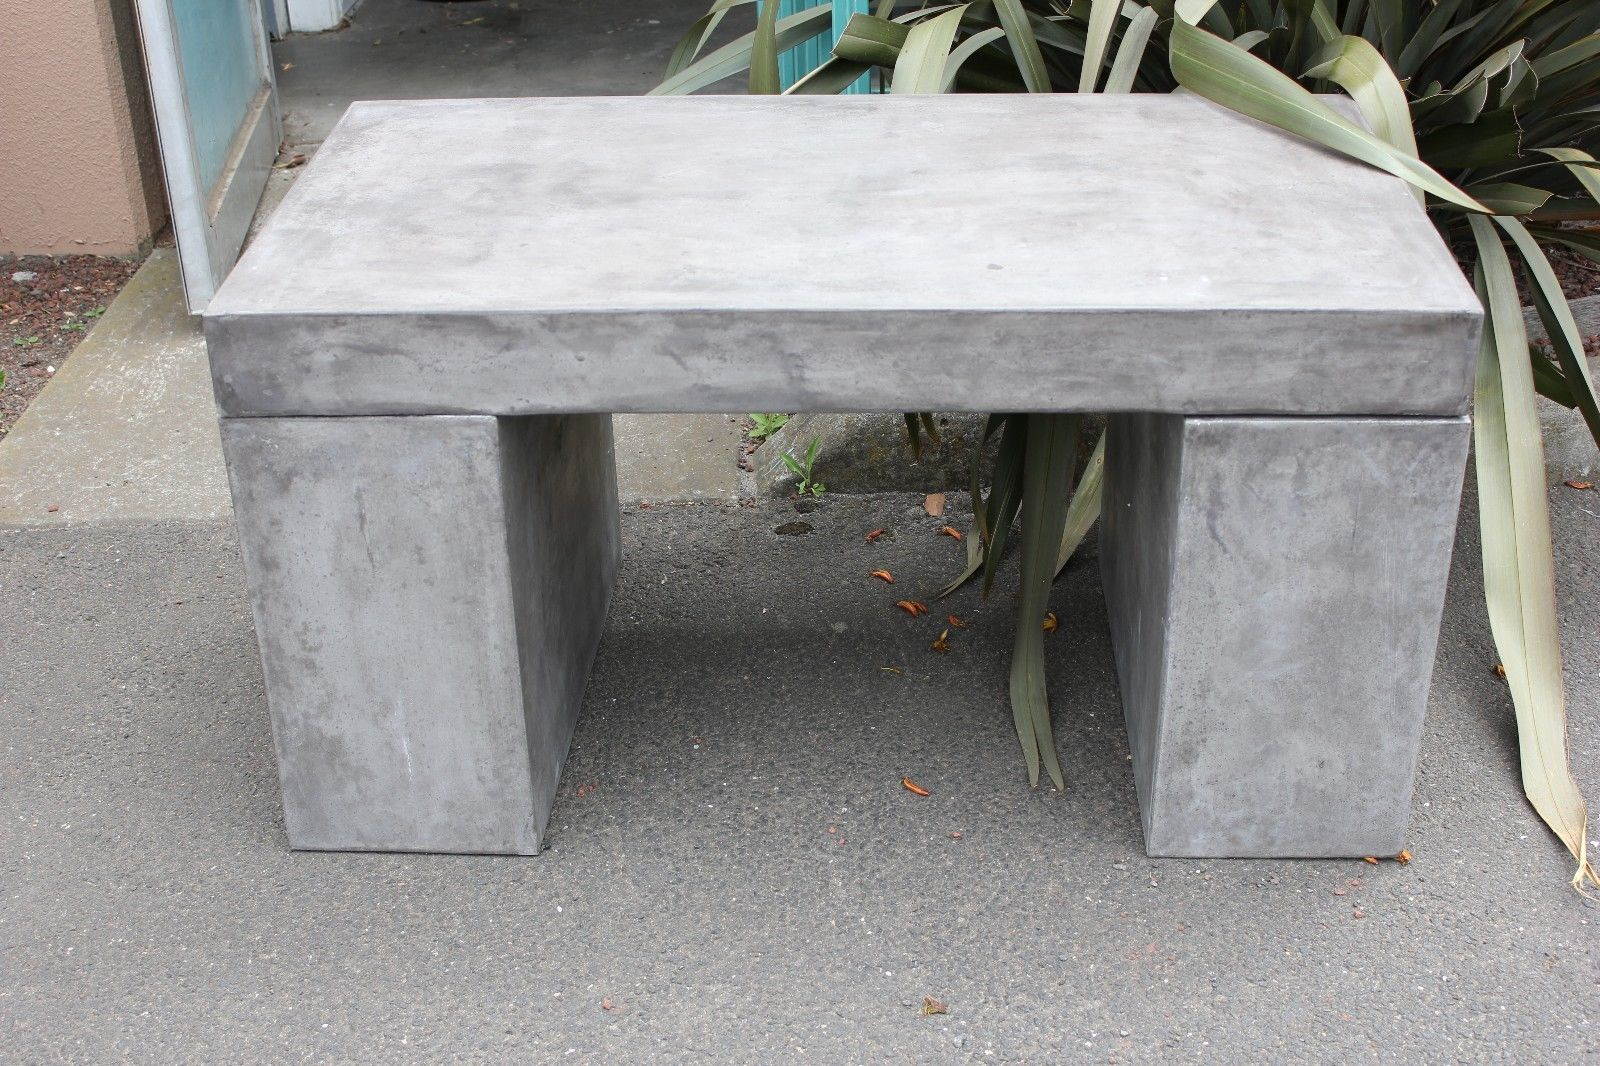 57 11 1. Outdoor Furniture  SALE  1 1mt Concrete Bench